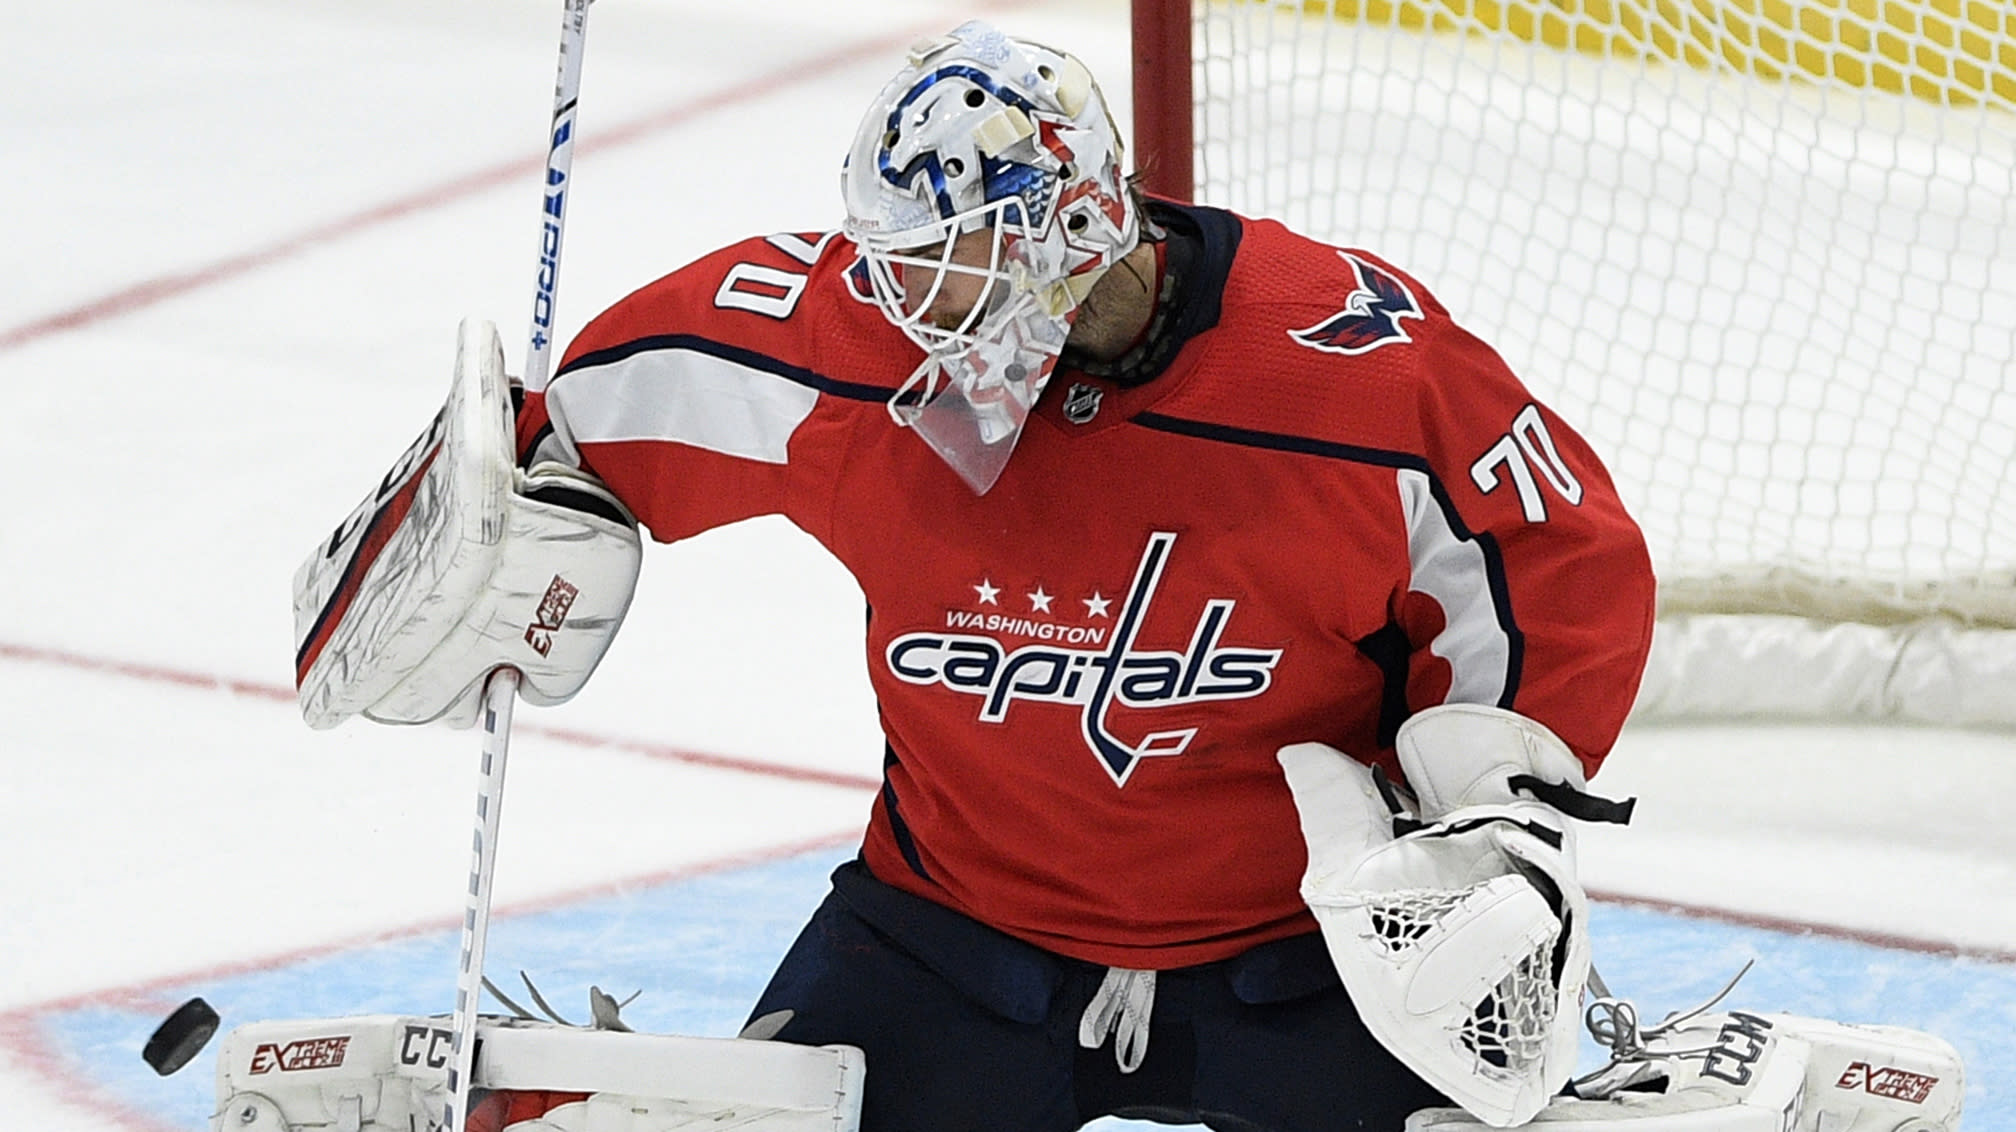 Braden Holtby Takes Nhl Lead With 11th Win